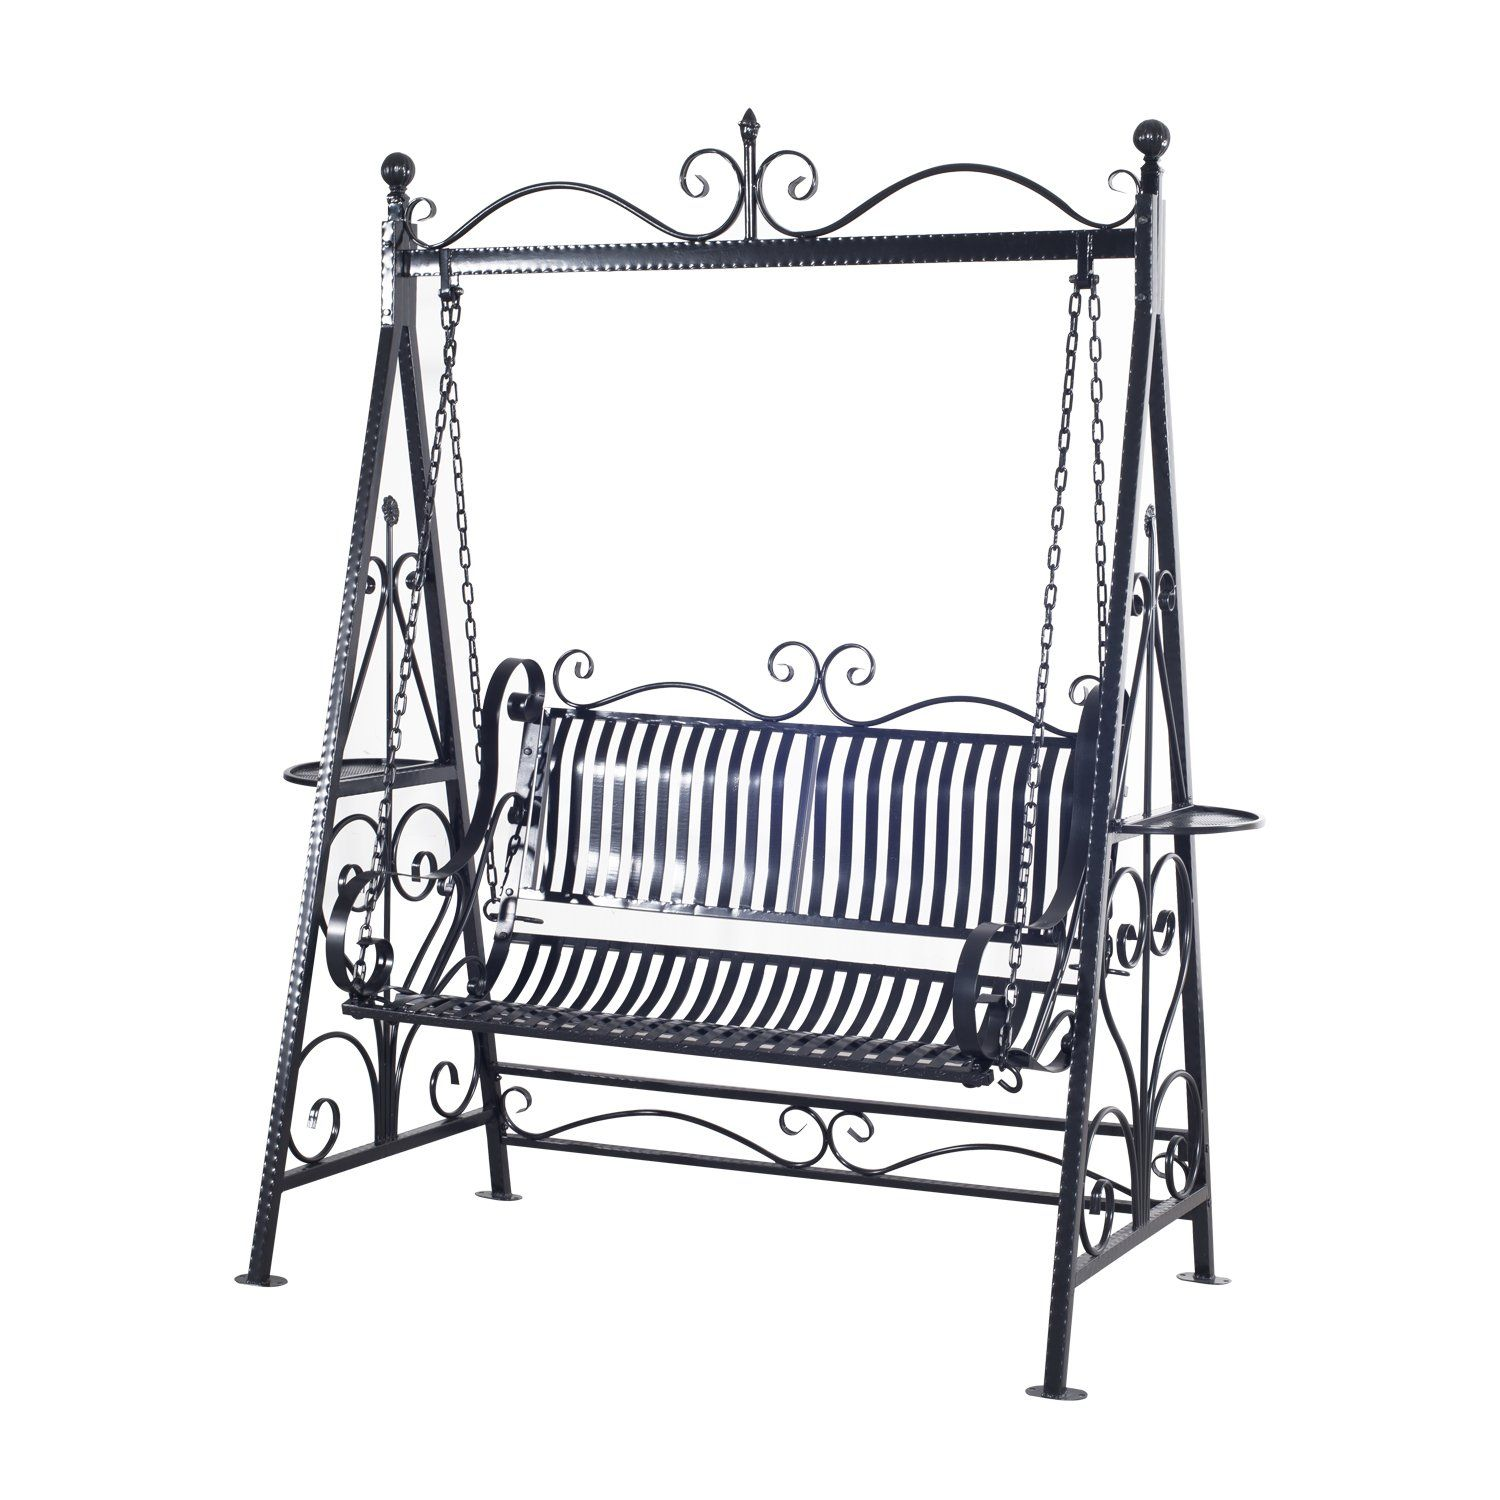 Outsunny Garden Metal Swing Chair Outdoor Patio Hammock Bench Cast